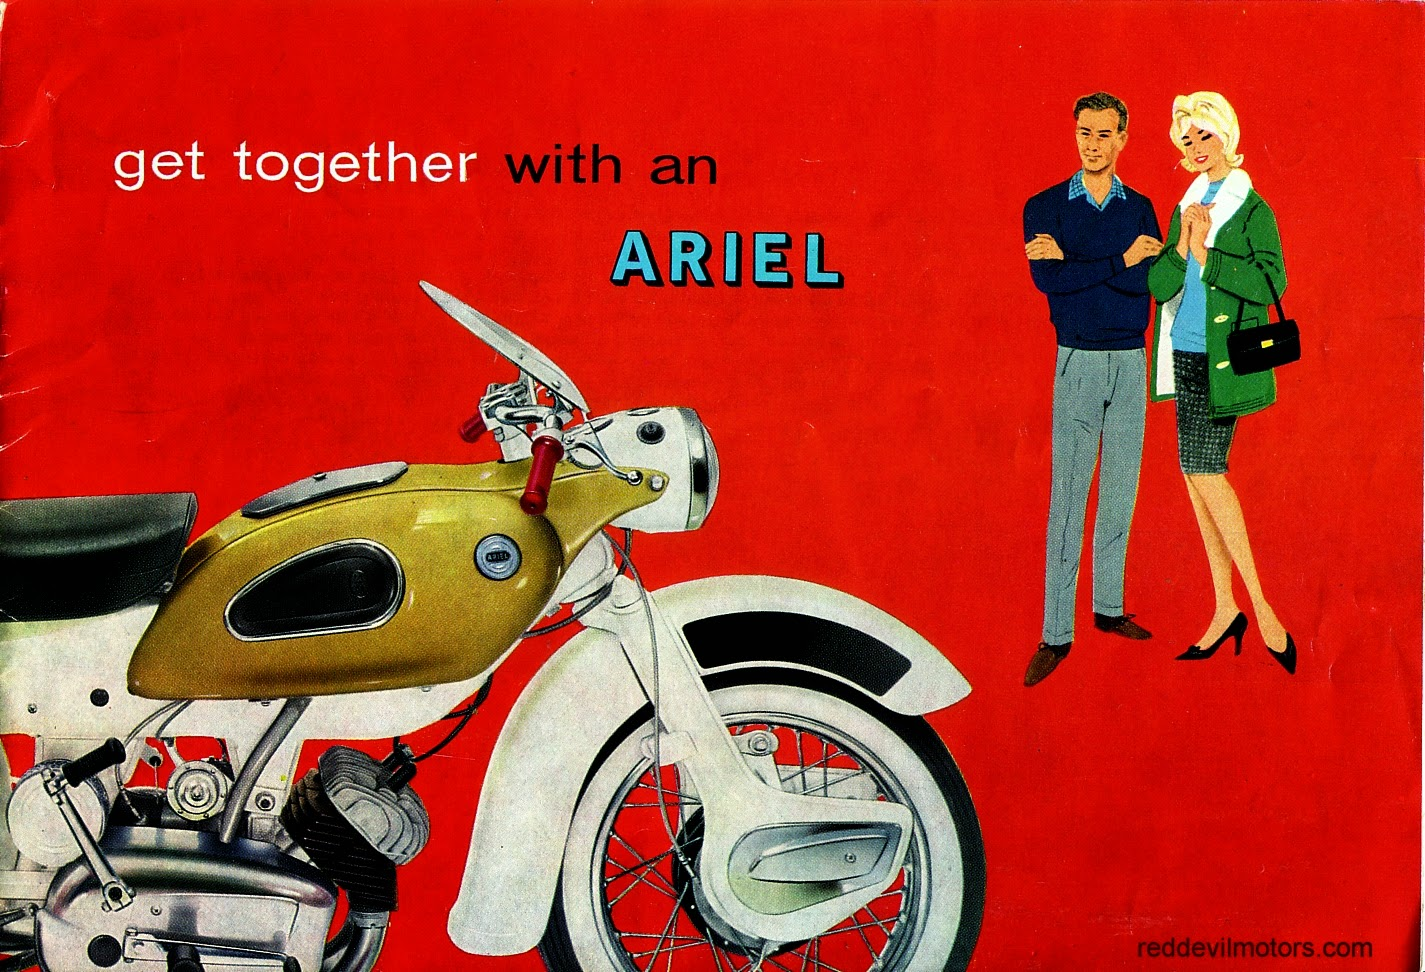 Ariel Arrow and Leader brochure front cover.